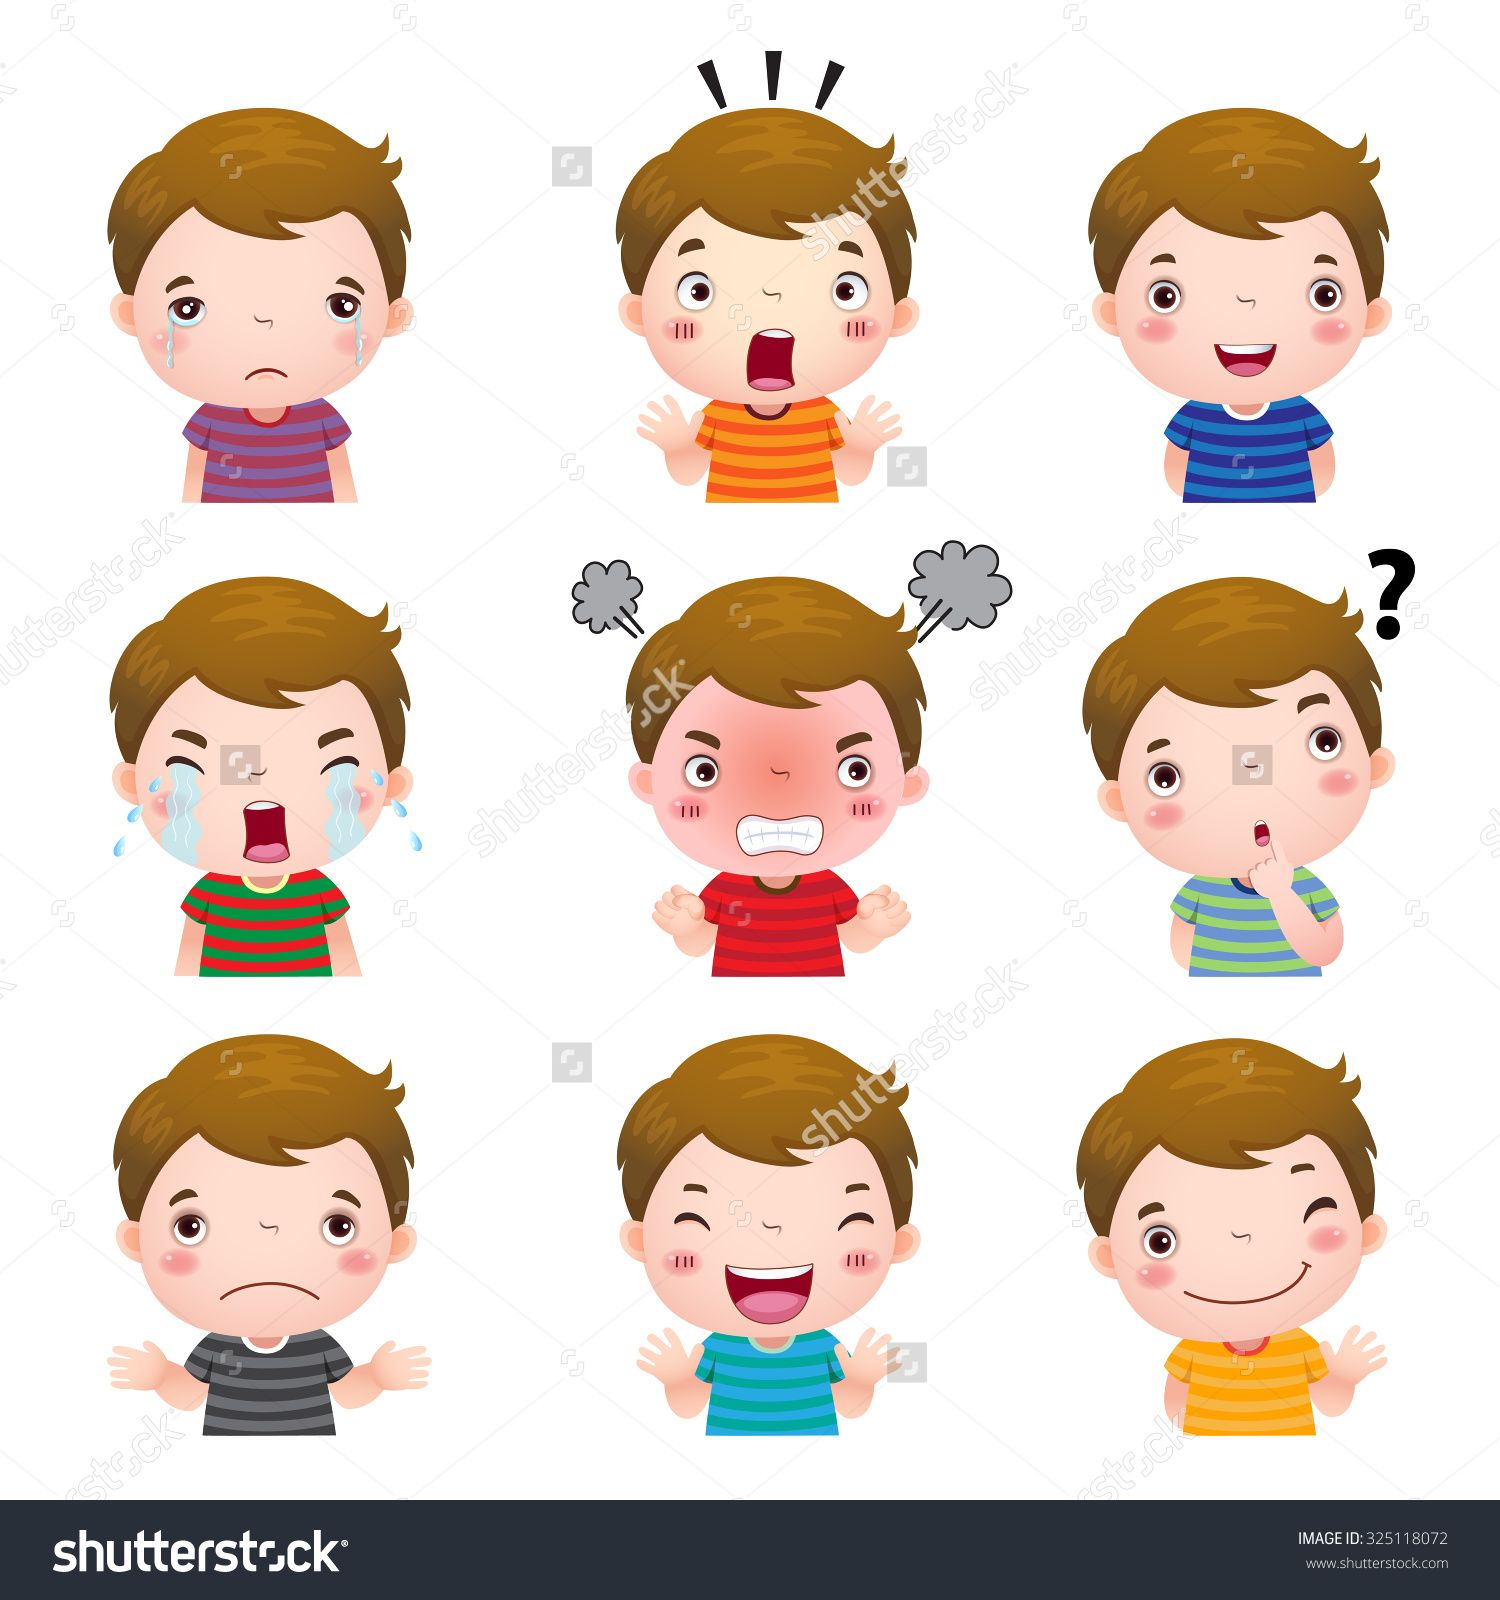 image free Google search teaching resources. Emotions clipart.